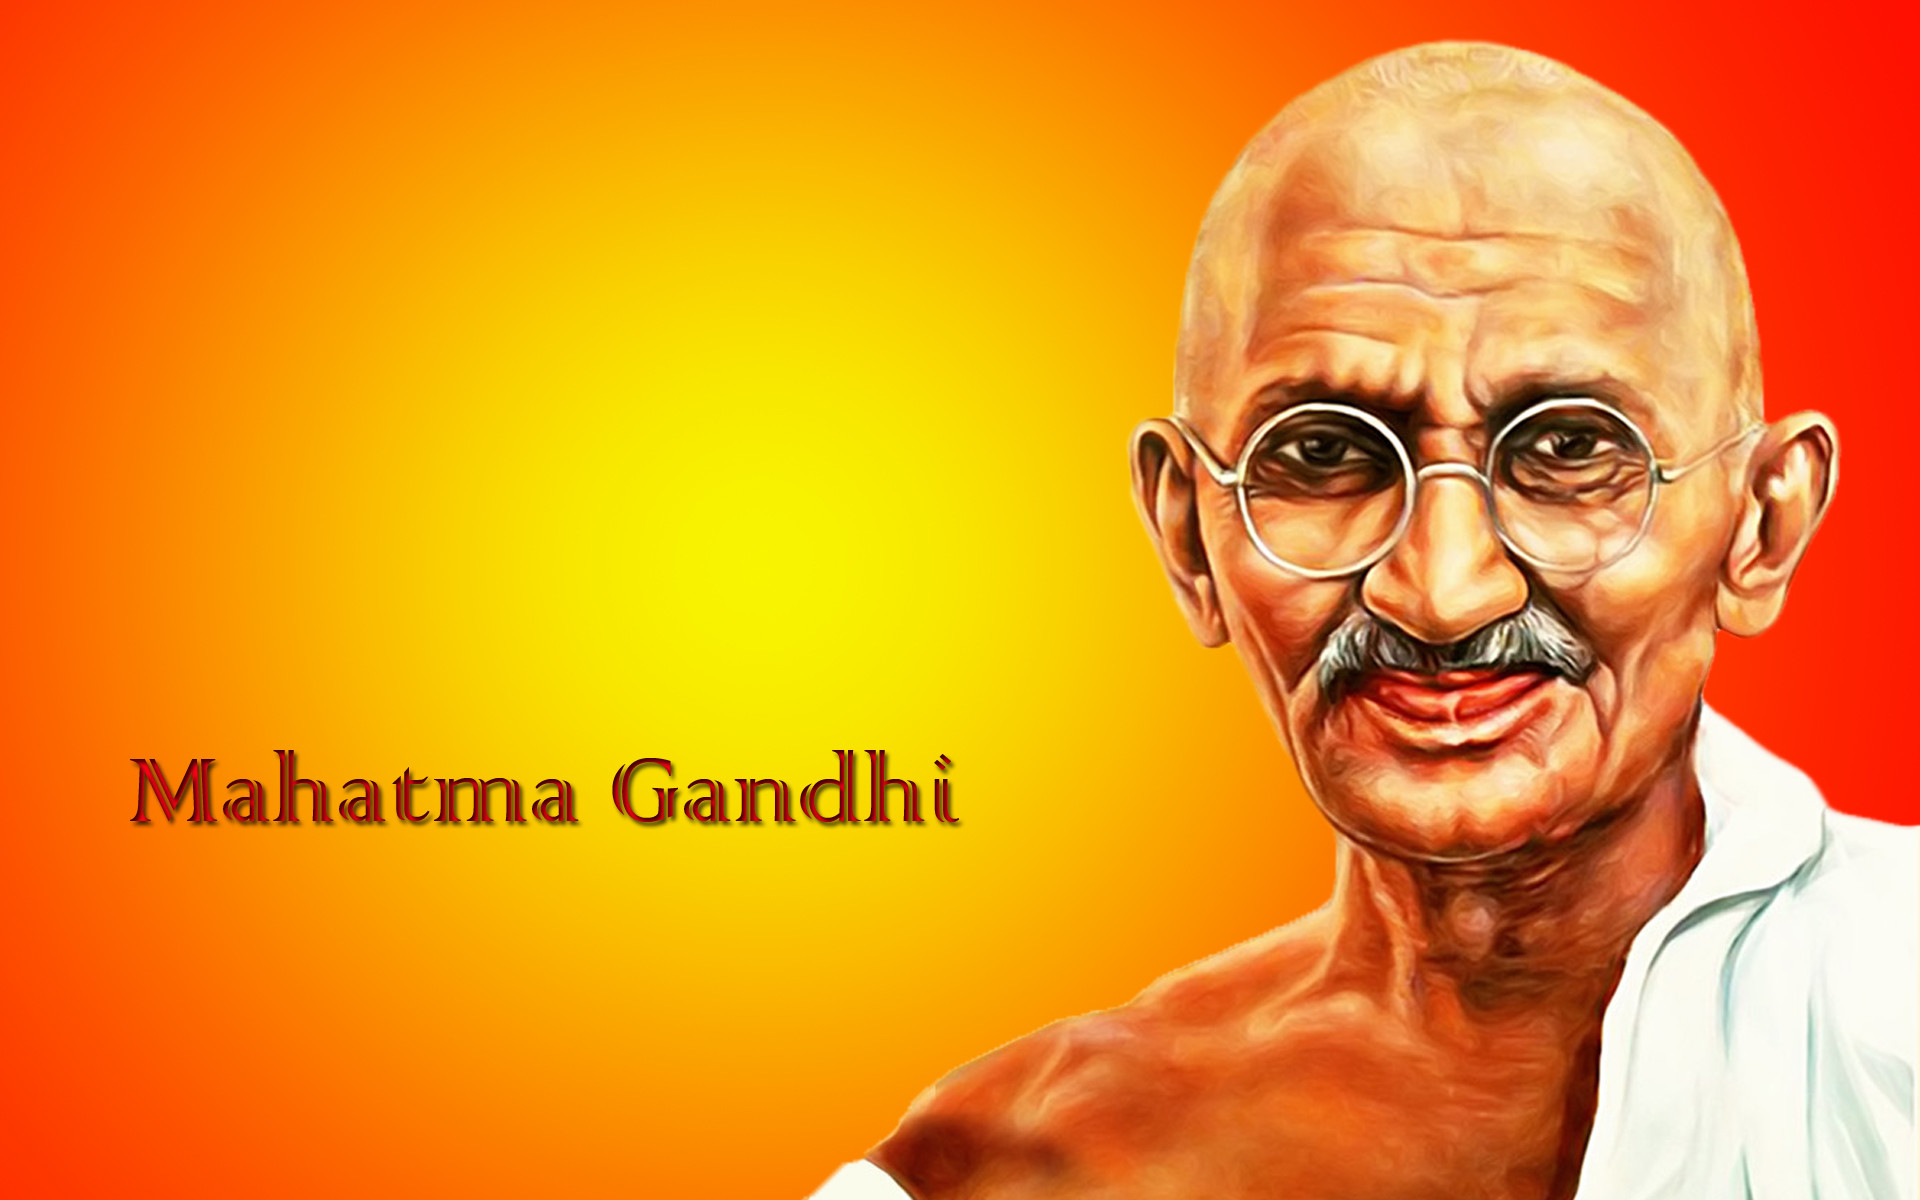 mahatma gandhi wallpapers 183��